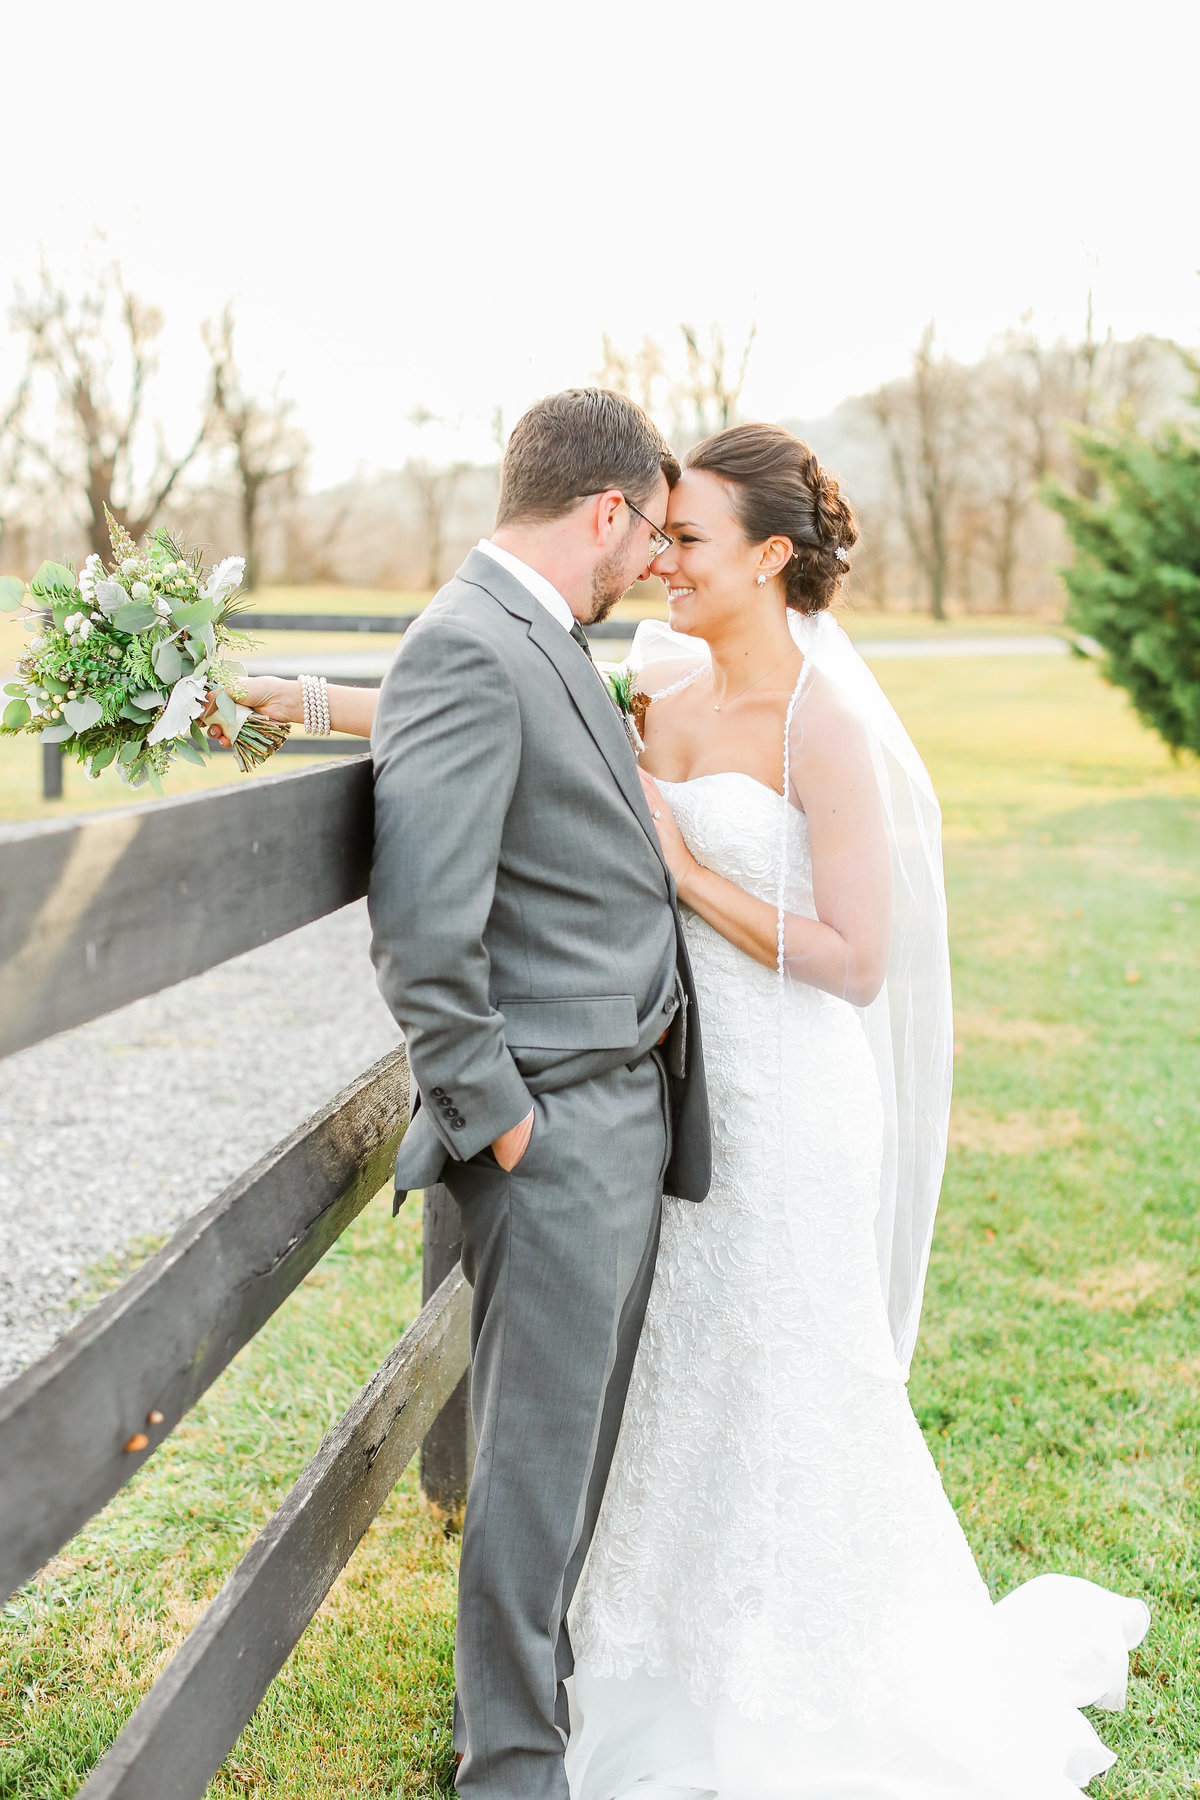 Nick-Brittany-Bride-Groom-Portraits-0901